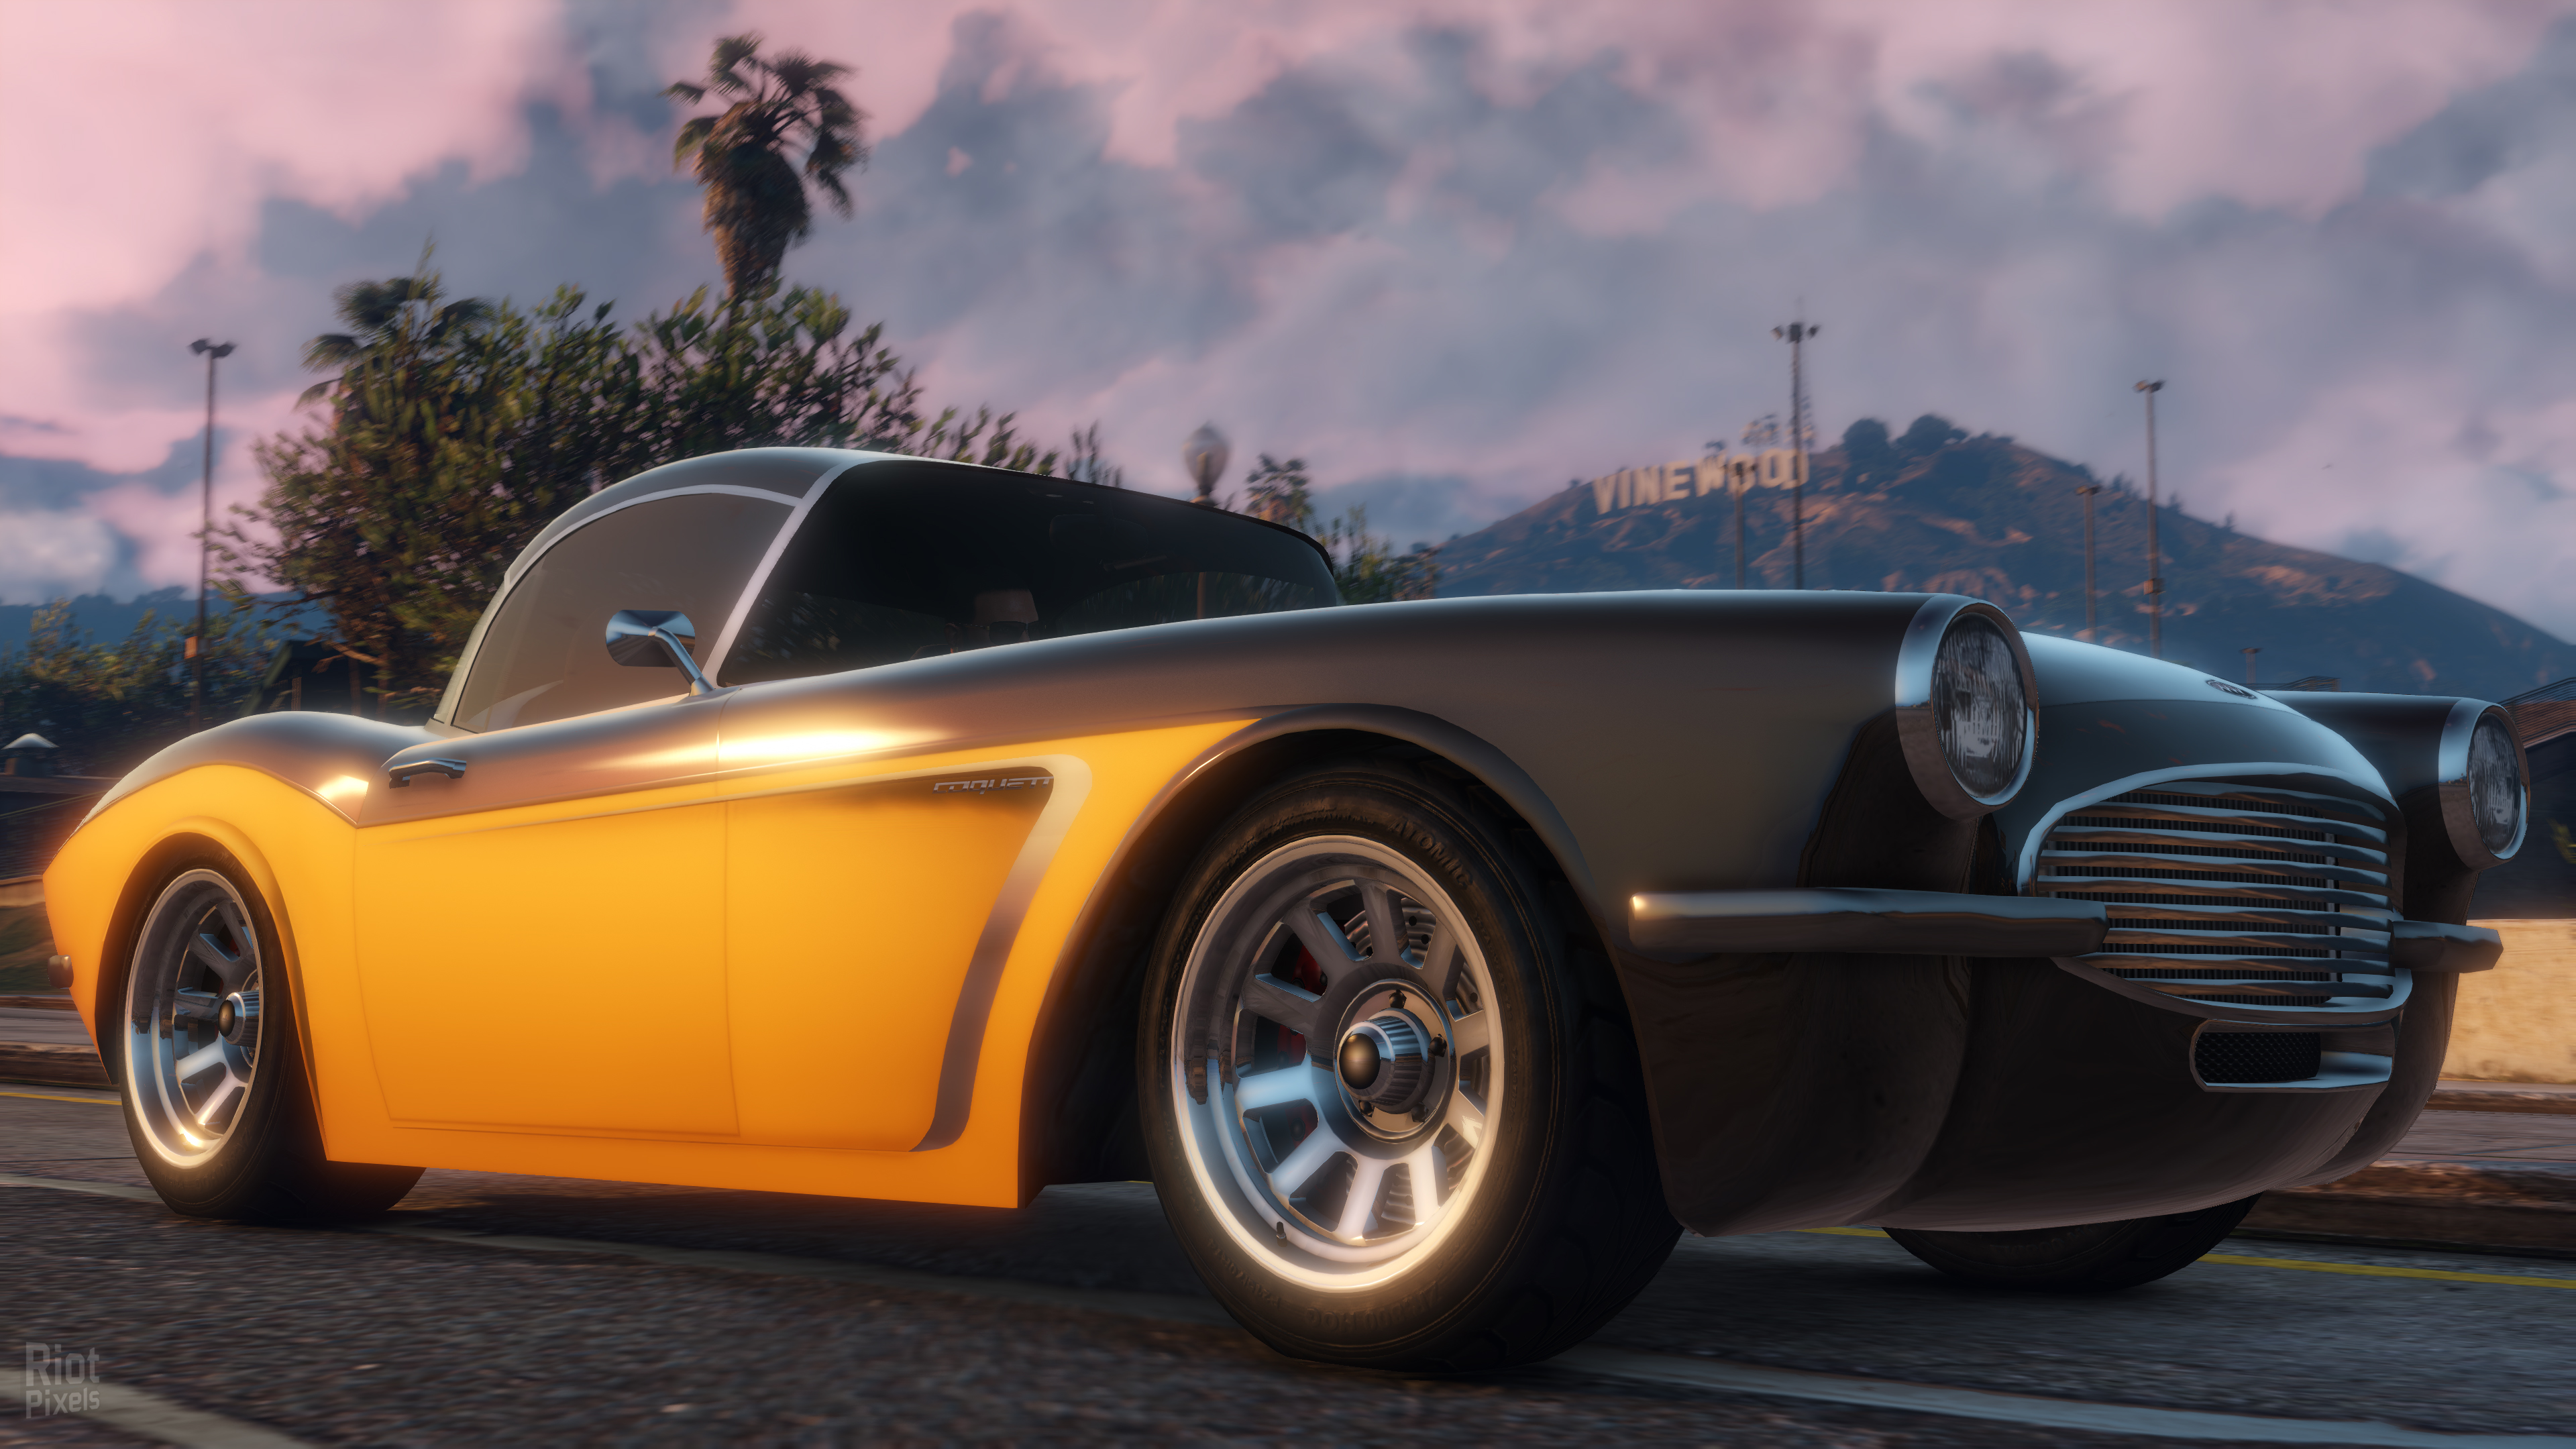 http://s01.riotpixels.net/data/78/07/7807dccf-4d54-43f2-bce3-a8e709374a37.jpg/screenshot.grand-theft-auto-5.3840x2160.2015-06-30.1121.jpg